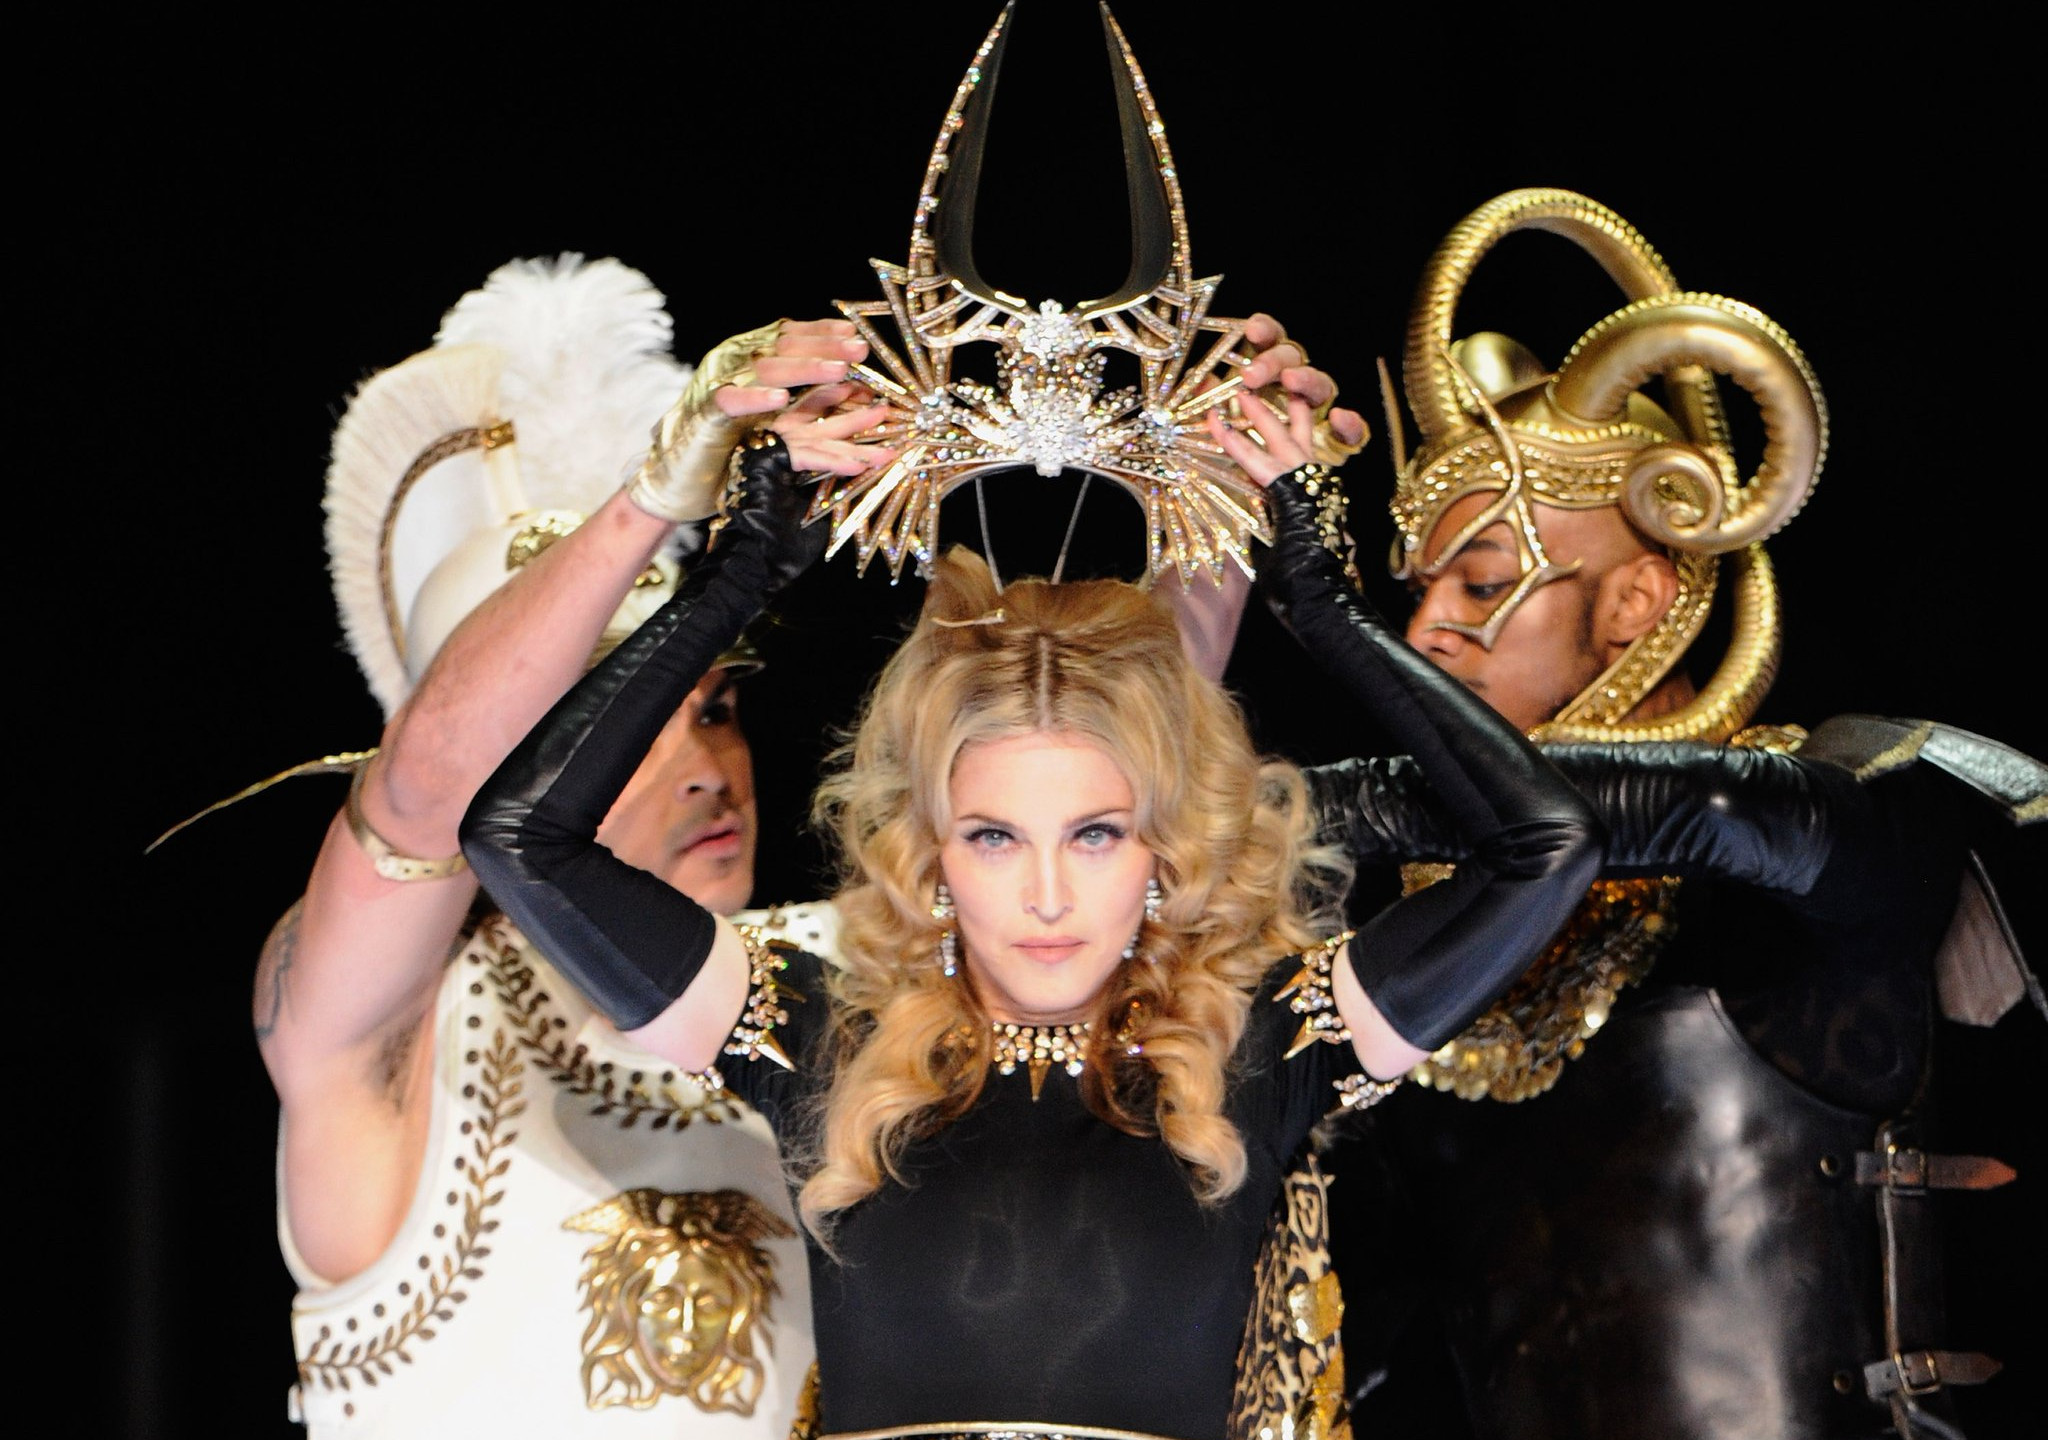 Madonna-delivered-performance-fit-pop-queen-2011